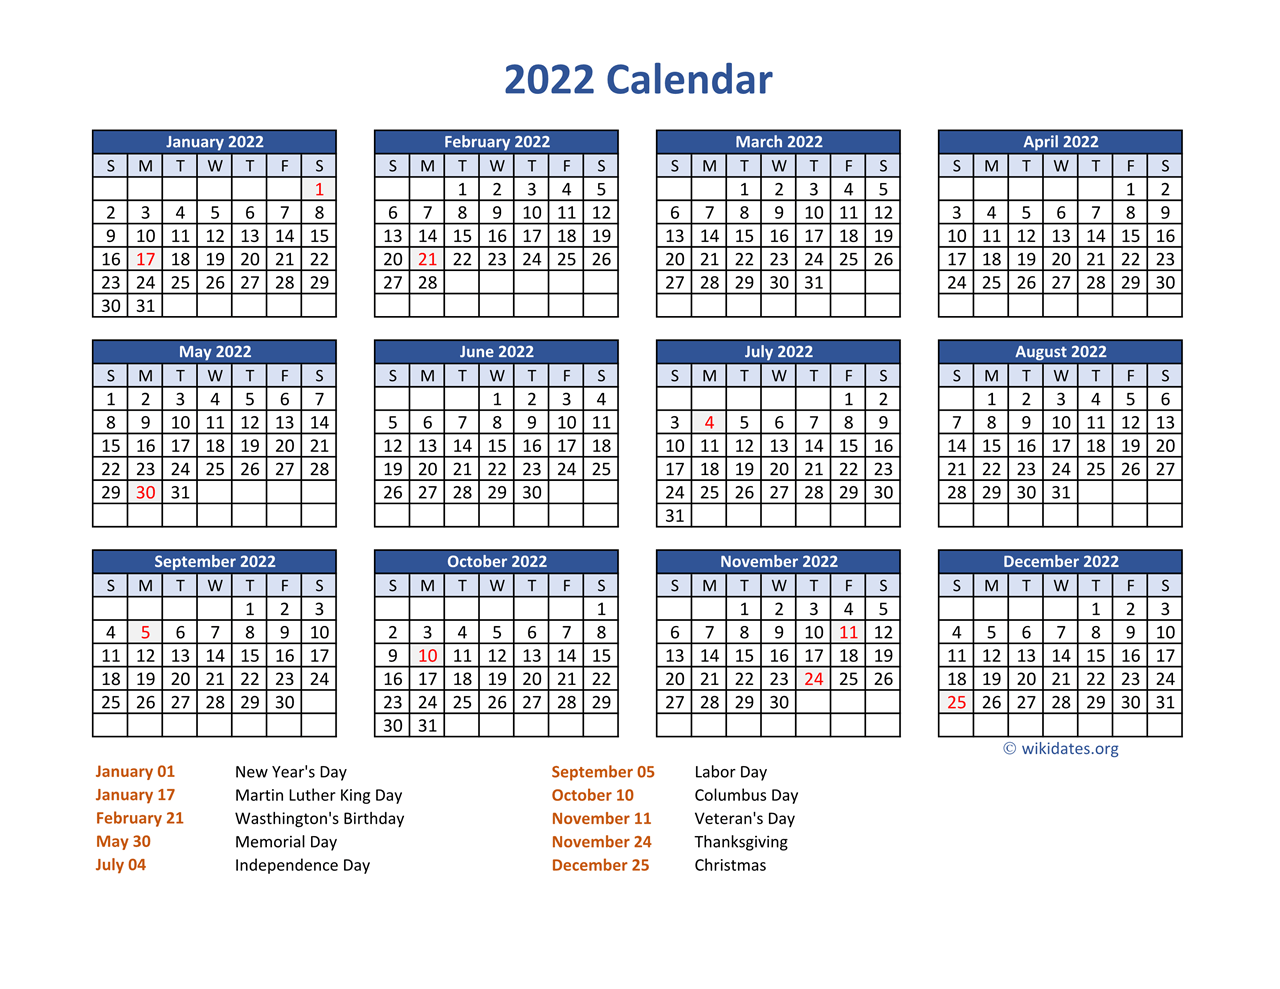 After the festive holiday season, the cold, bleak days of winter can see. PDF Calendar 2022 with Federal Holidays   WikiDates.org